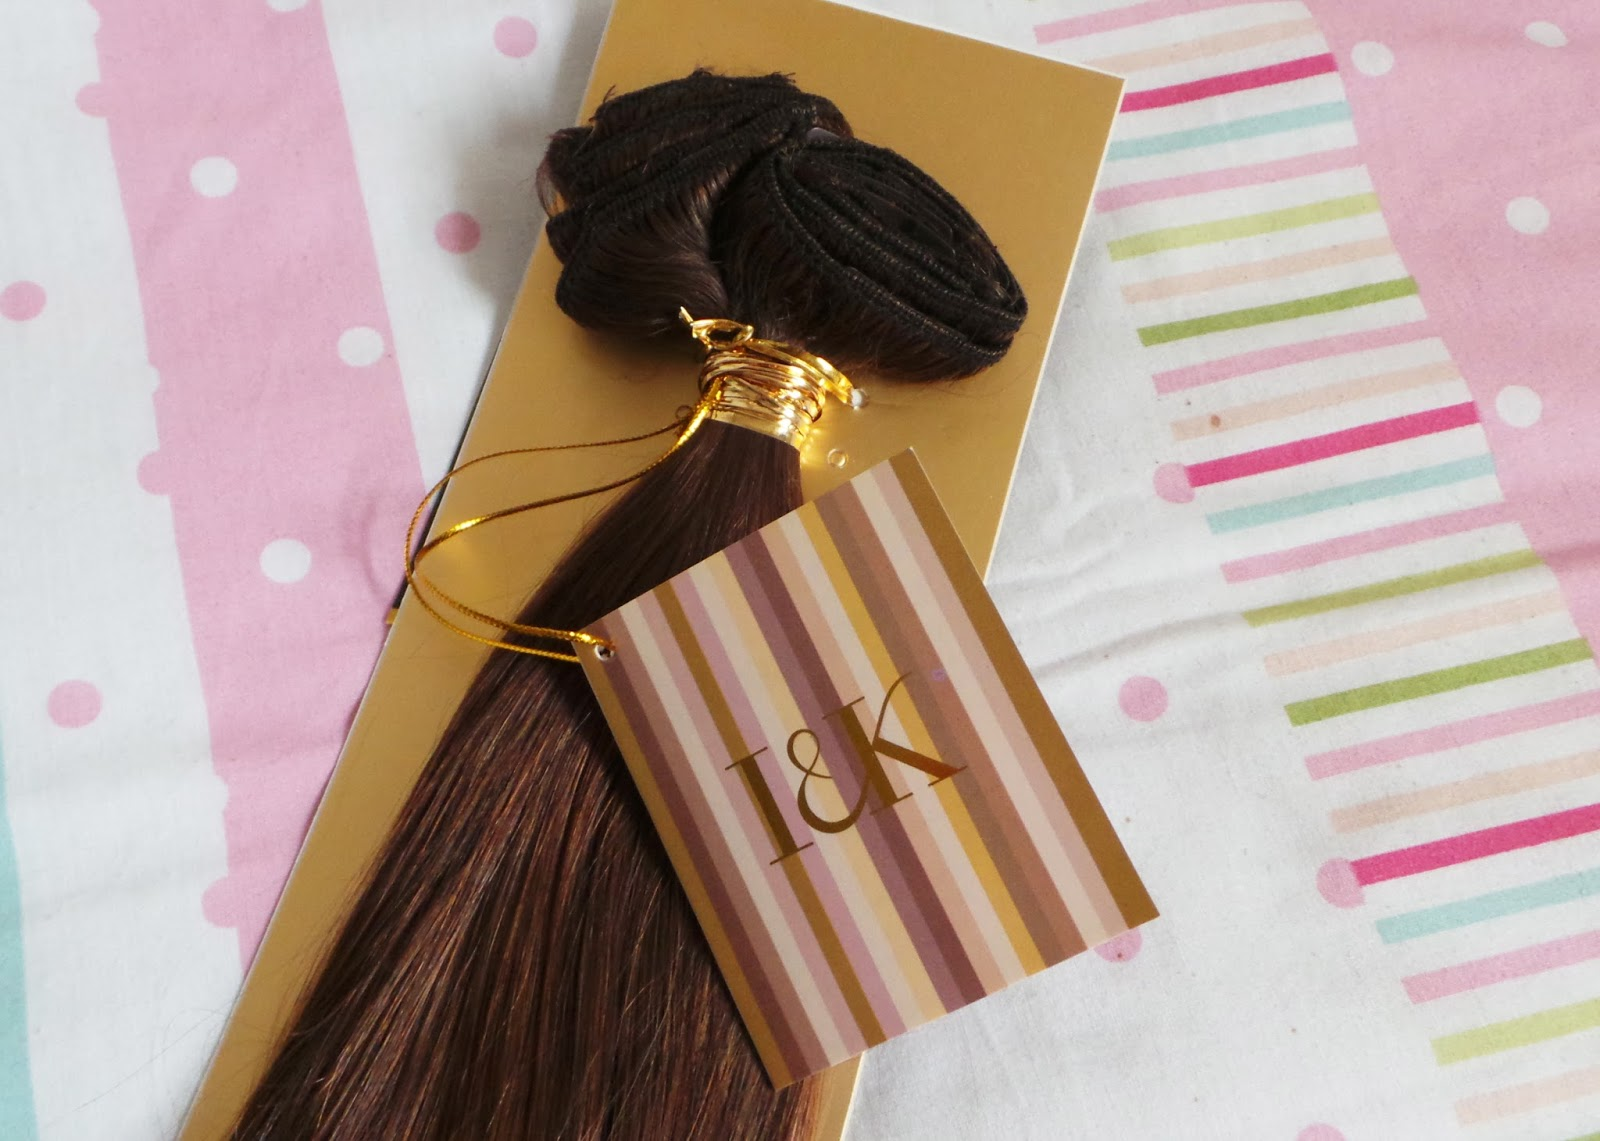 hair extensions, clip in hair extensions, real hair extensions, I&K Hair extensions review, Hairtrade hair extensions, hair blogger, beauty blogger, bblogger, beauty blog, hair review, haircare review, hair products,